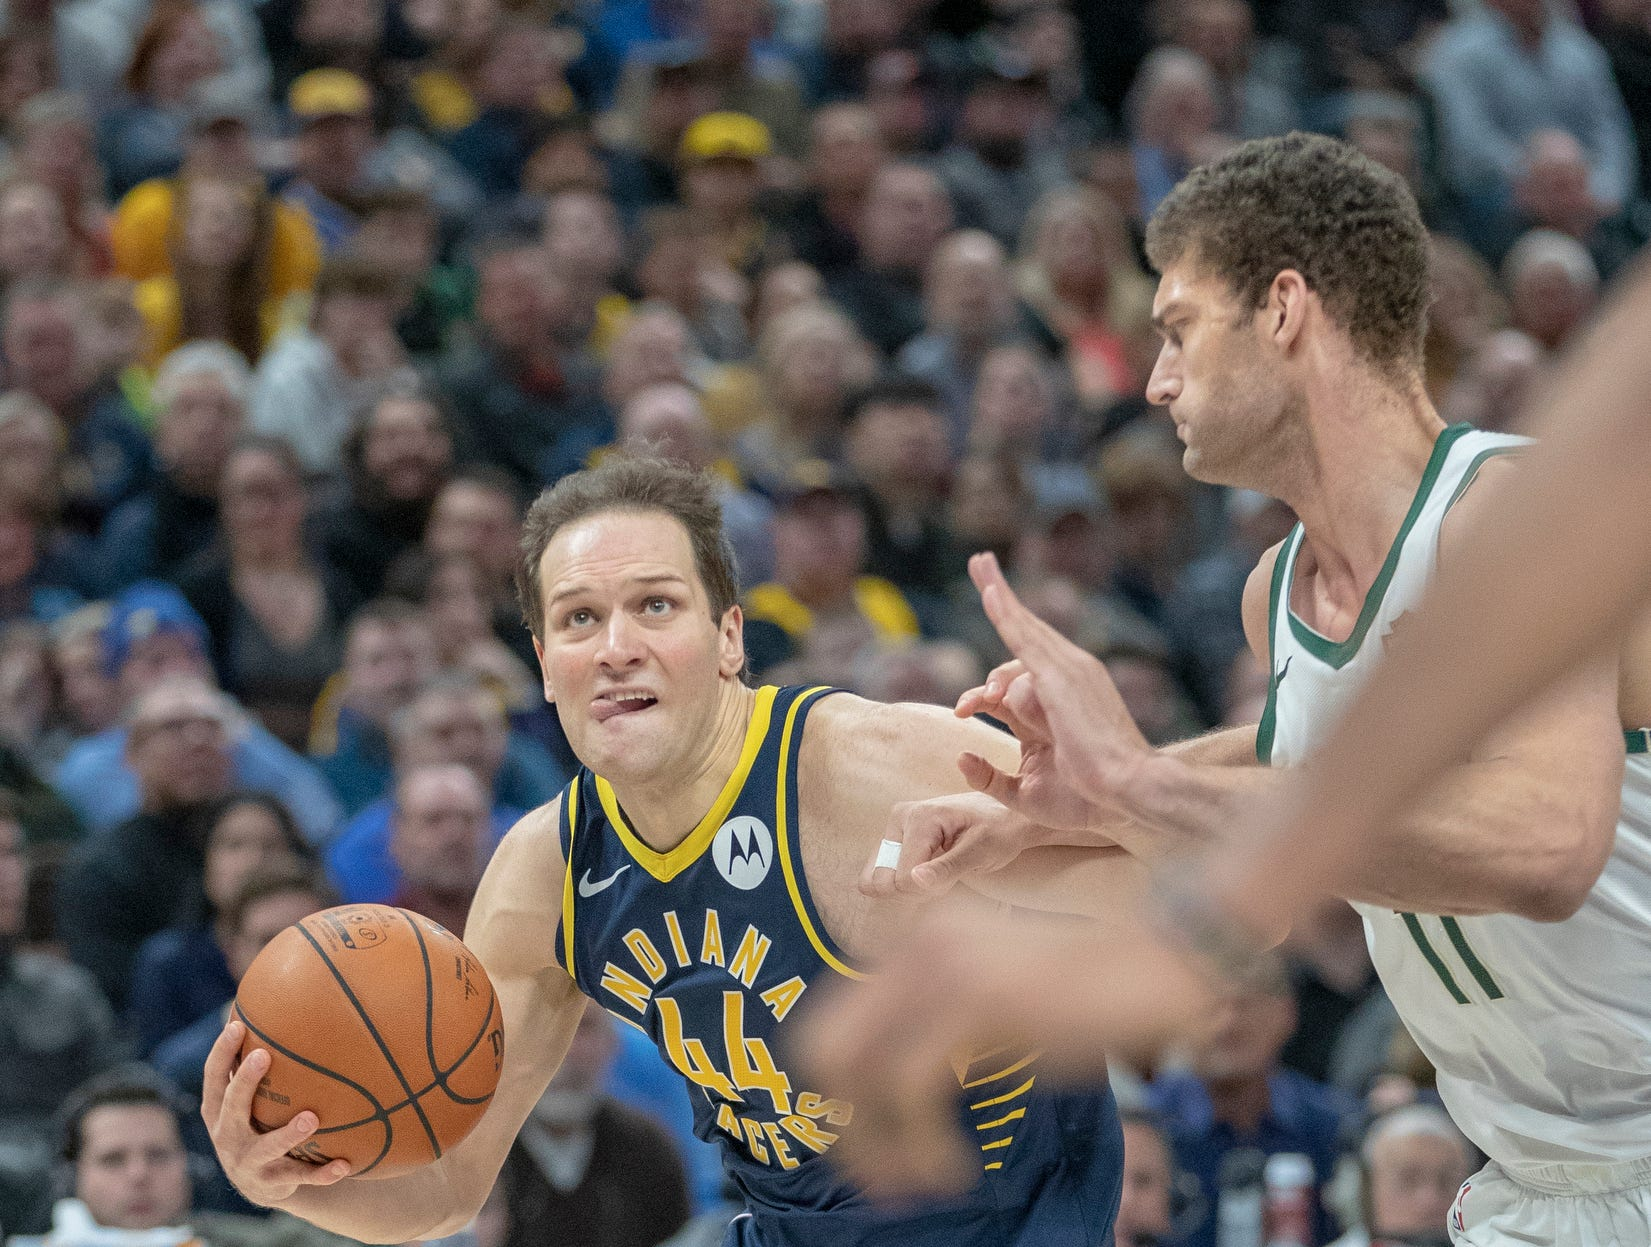 Bojan Bogdanovic of the Indiana Pacers heads for the basket against Brook Lopez of the Milwaukee Bucks, Bankers Life Fieldhouse, Indianapolis, Wednesday, Feb. 13, 2019. Milwaukee won 106-97.